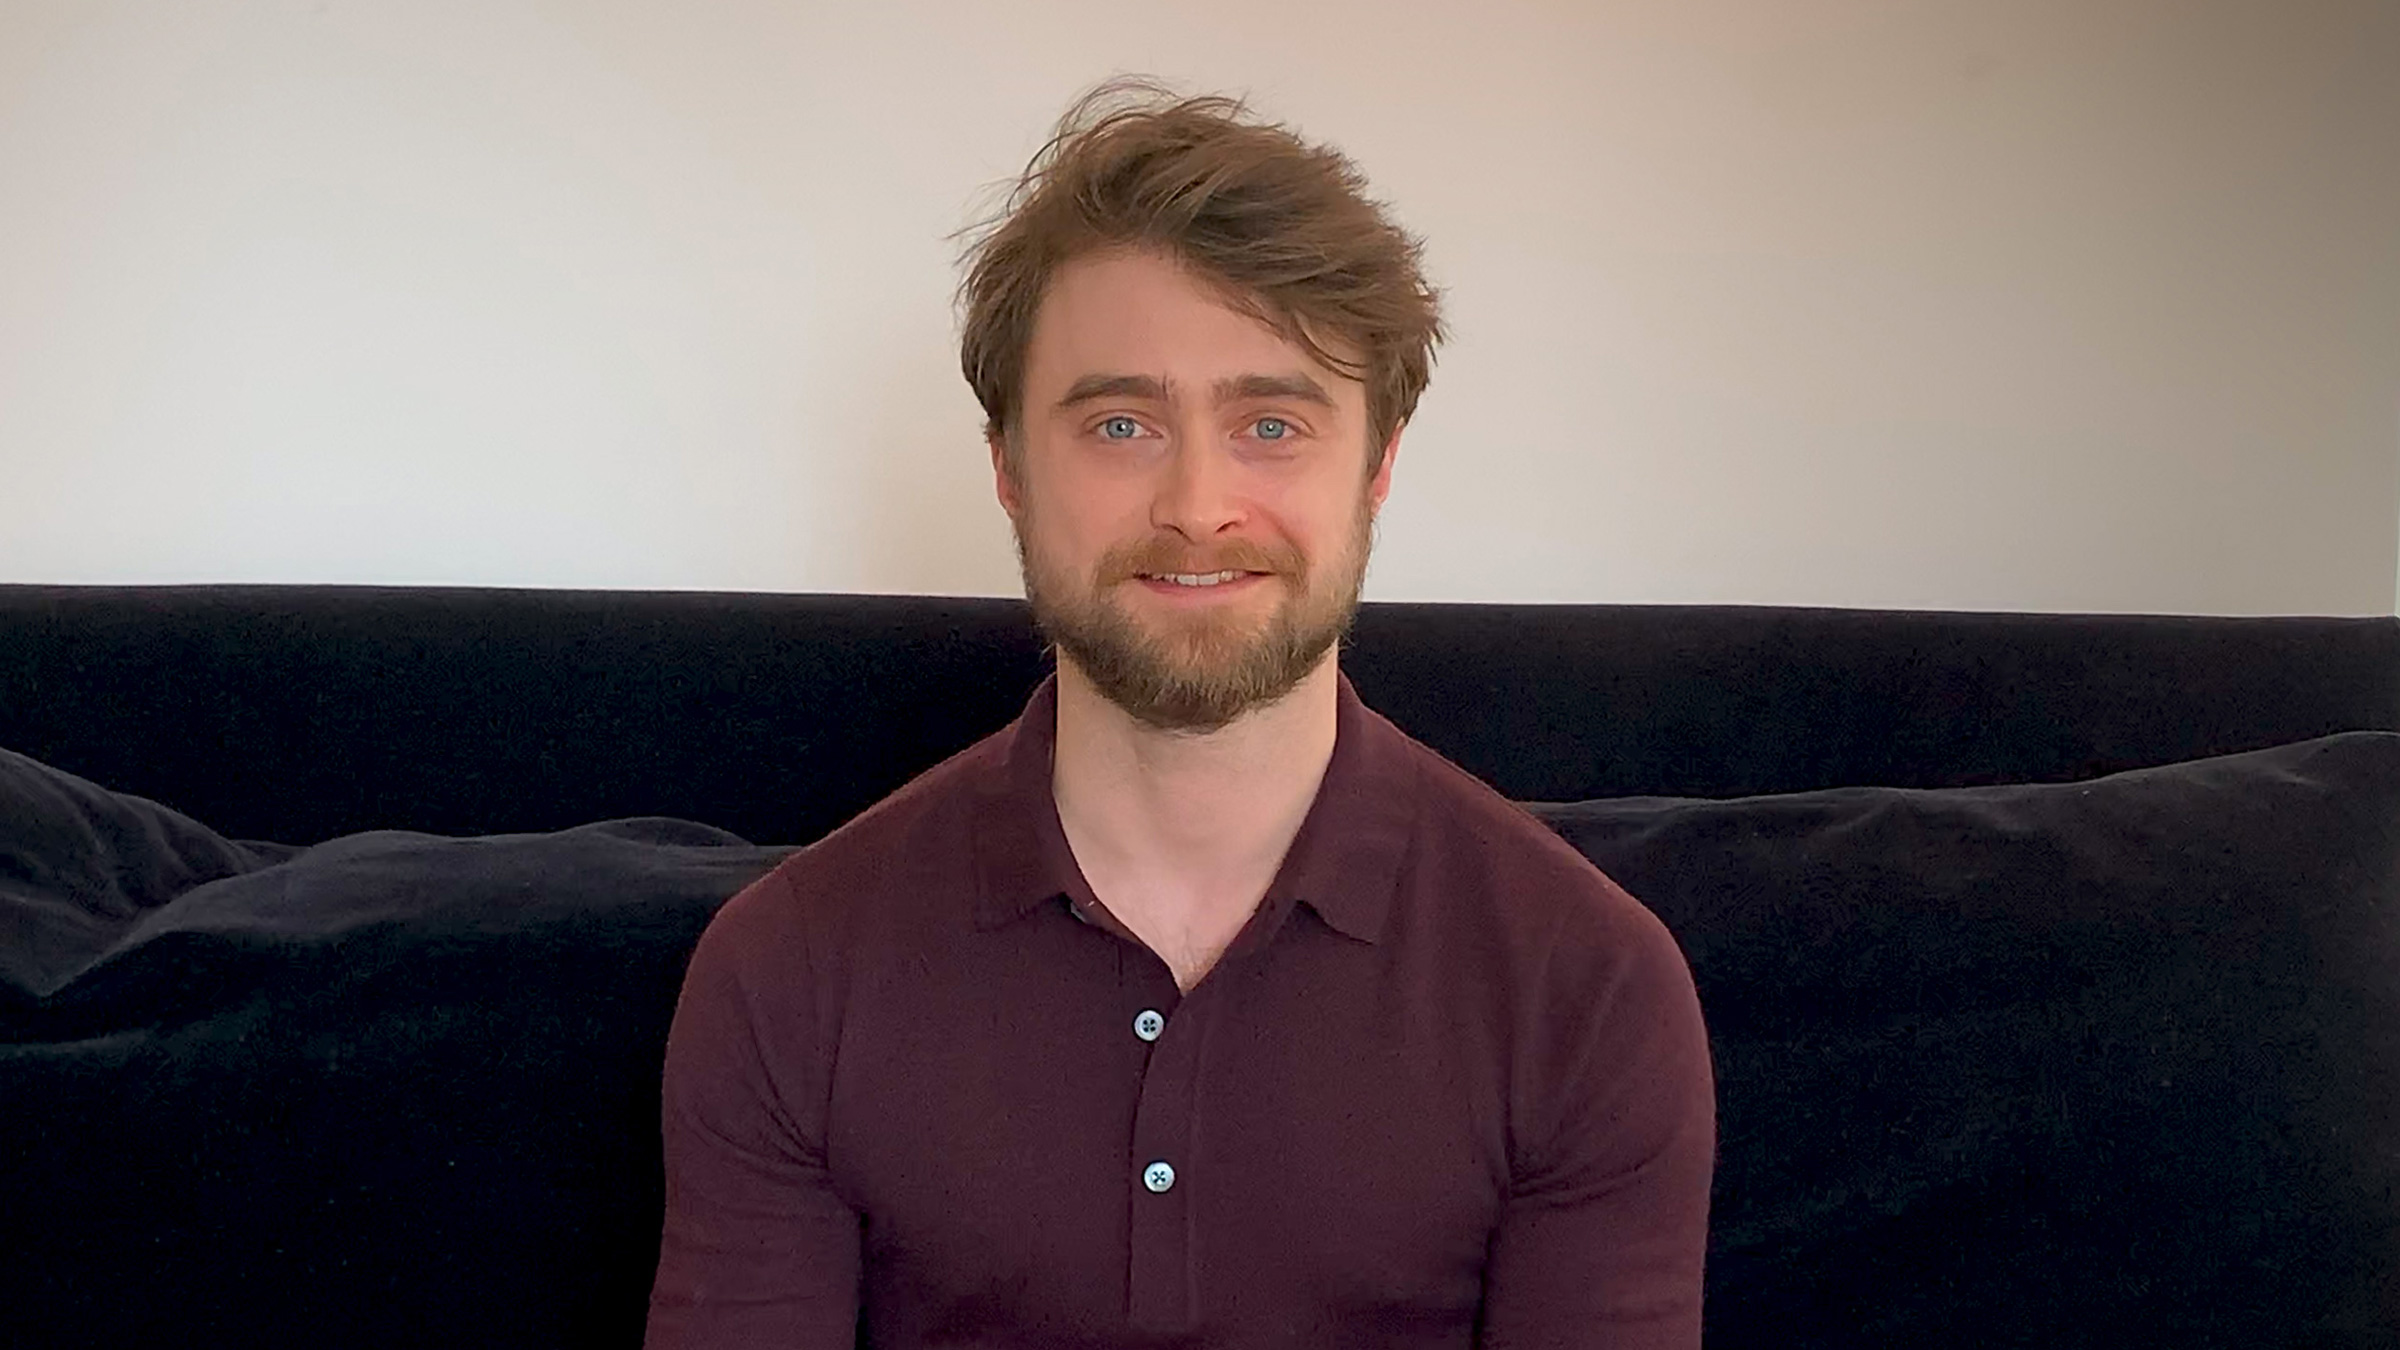 Haven't seen Daniel Radcliffe read Chapter One yet?